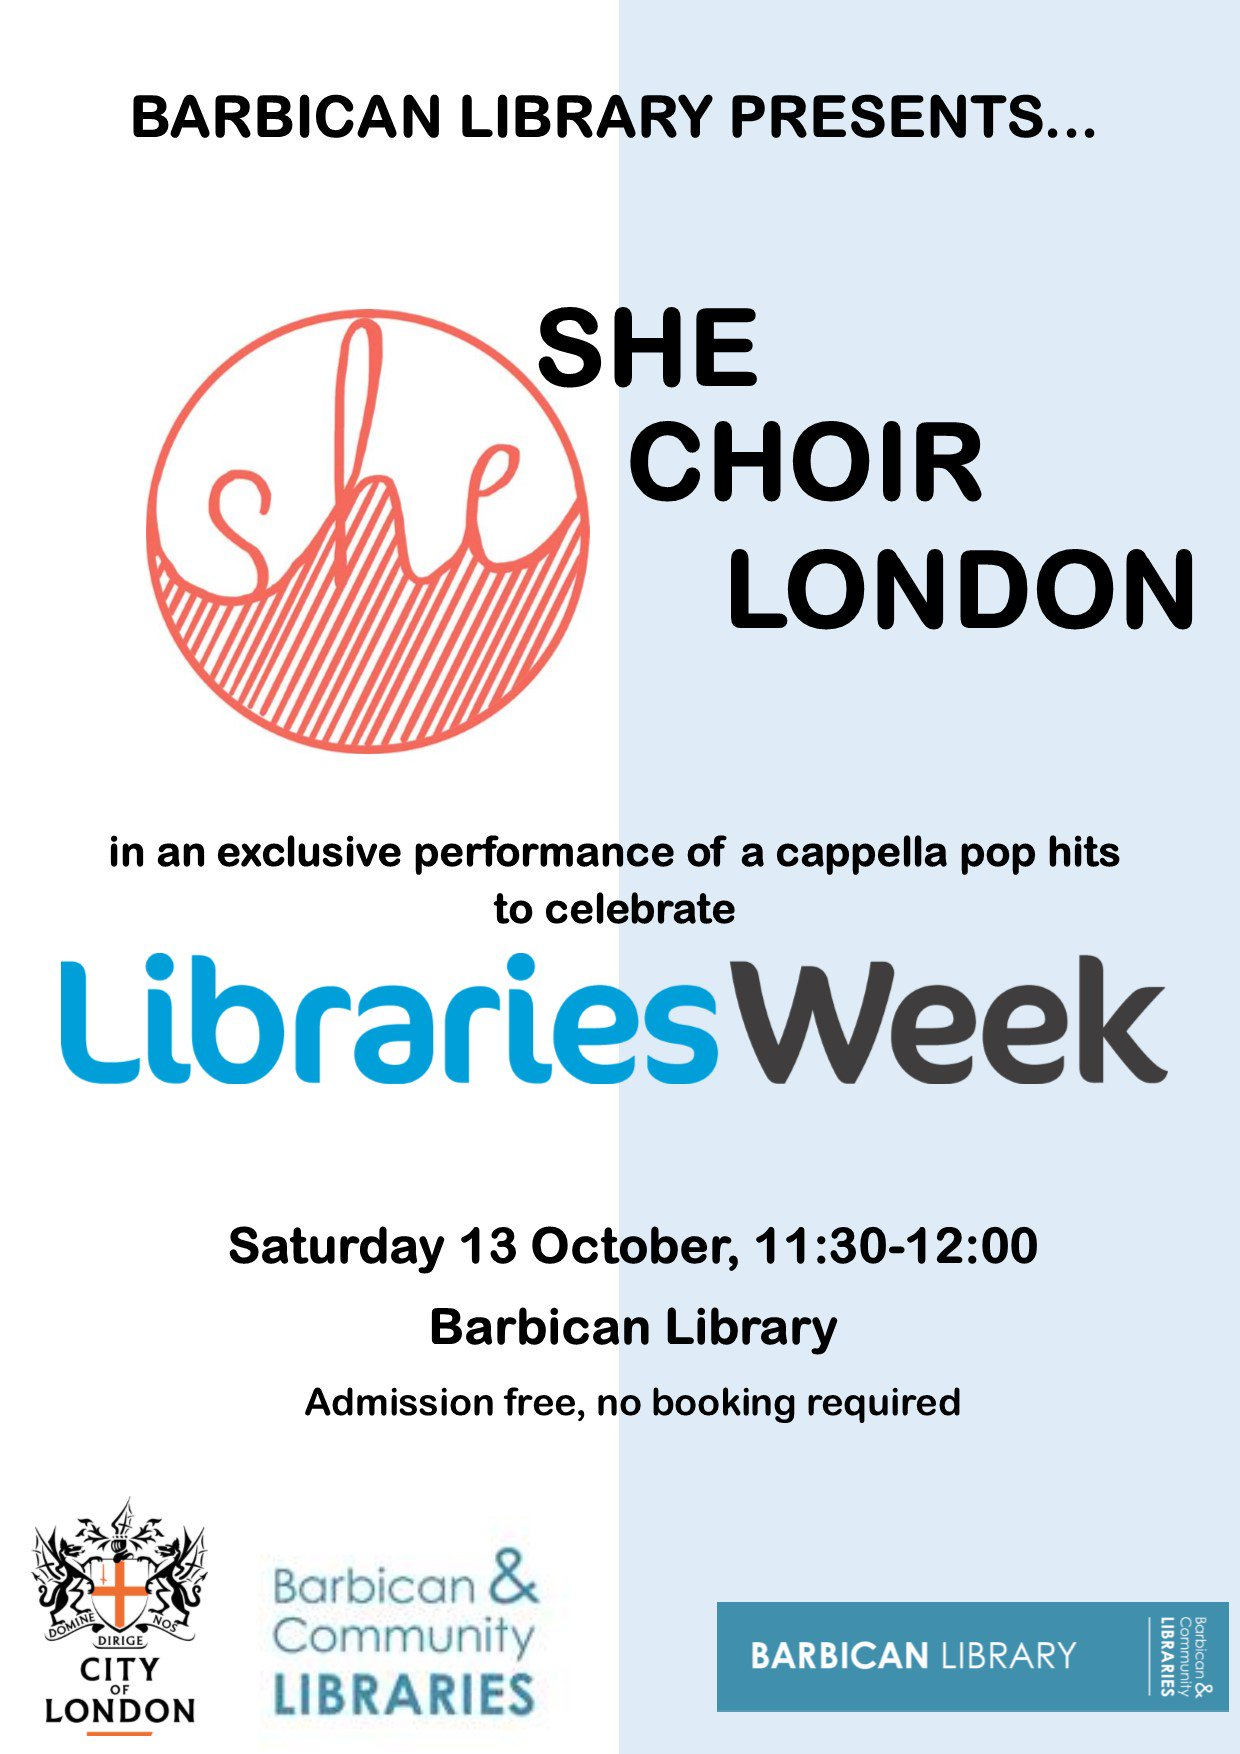 Barbican Music Library on Twitter: